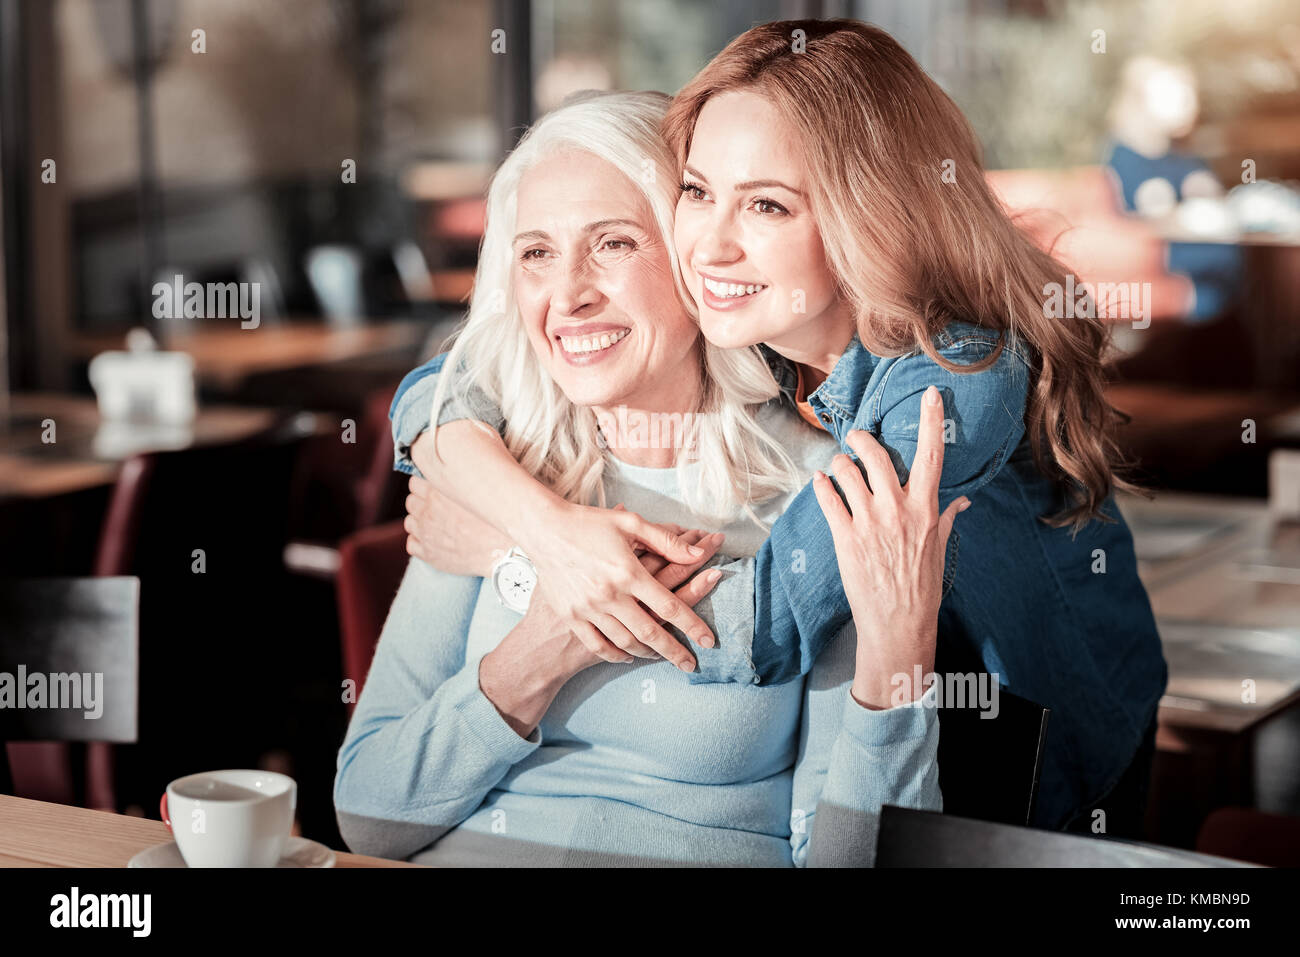 Senior woman laughing positive tandis que sa petite-fille l'étreindre Photo Stock